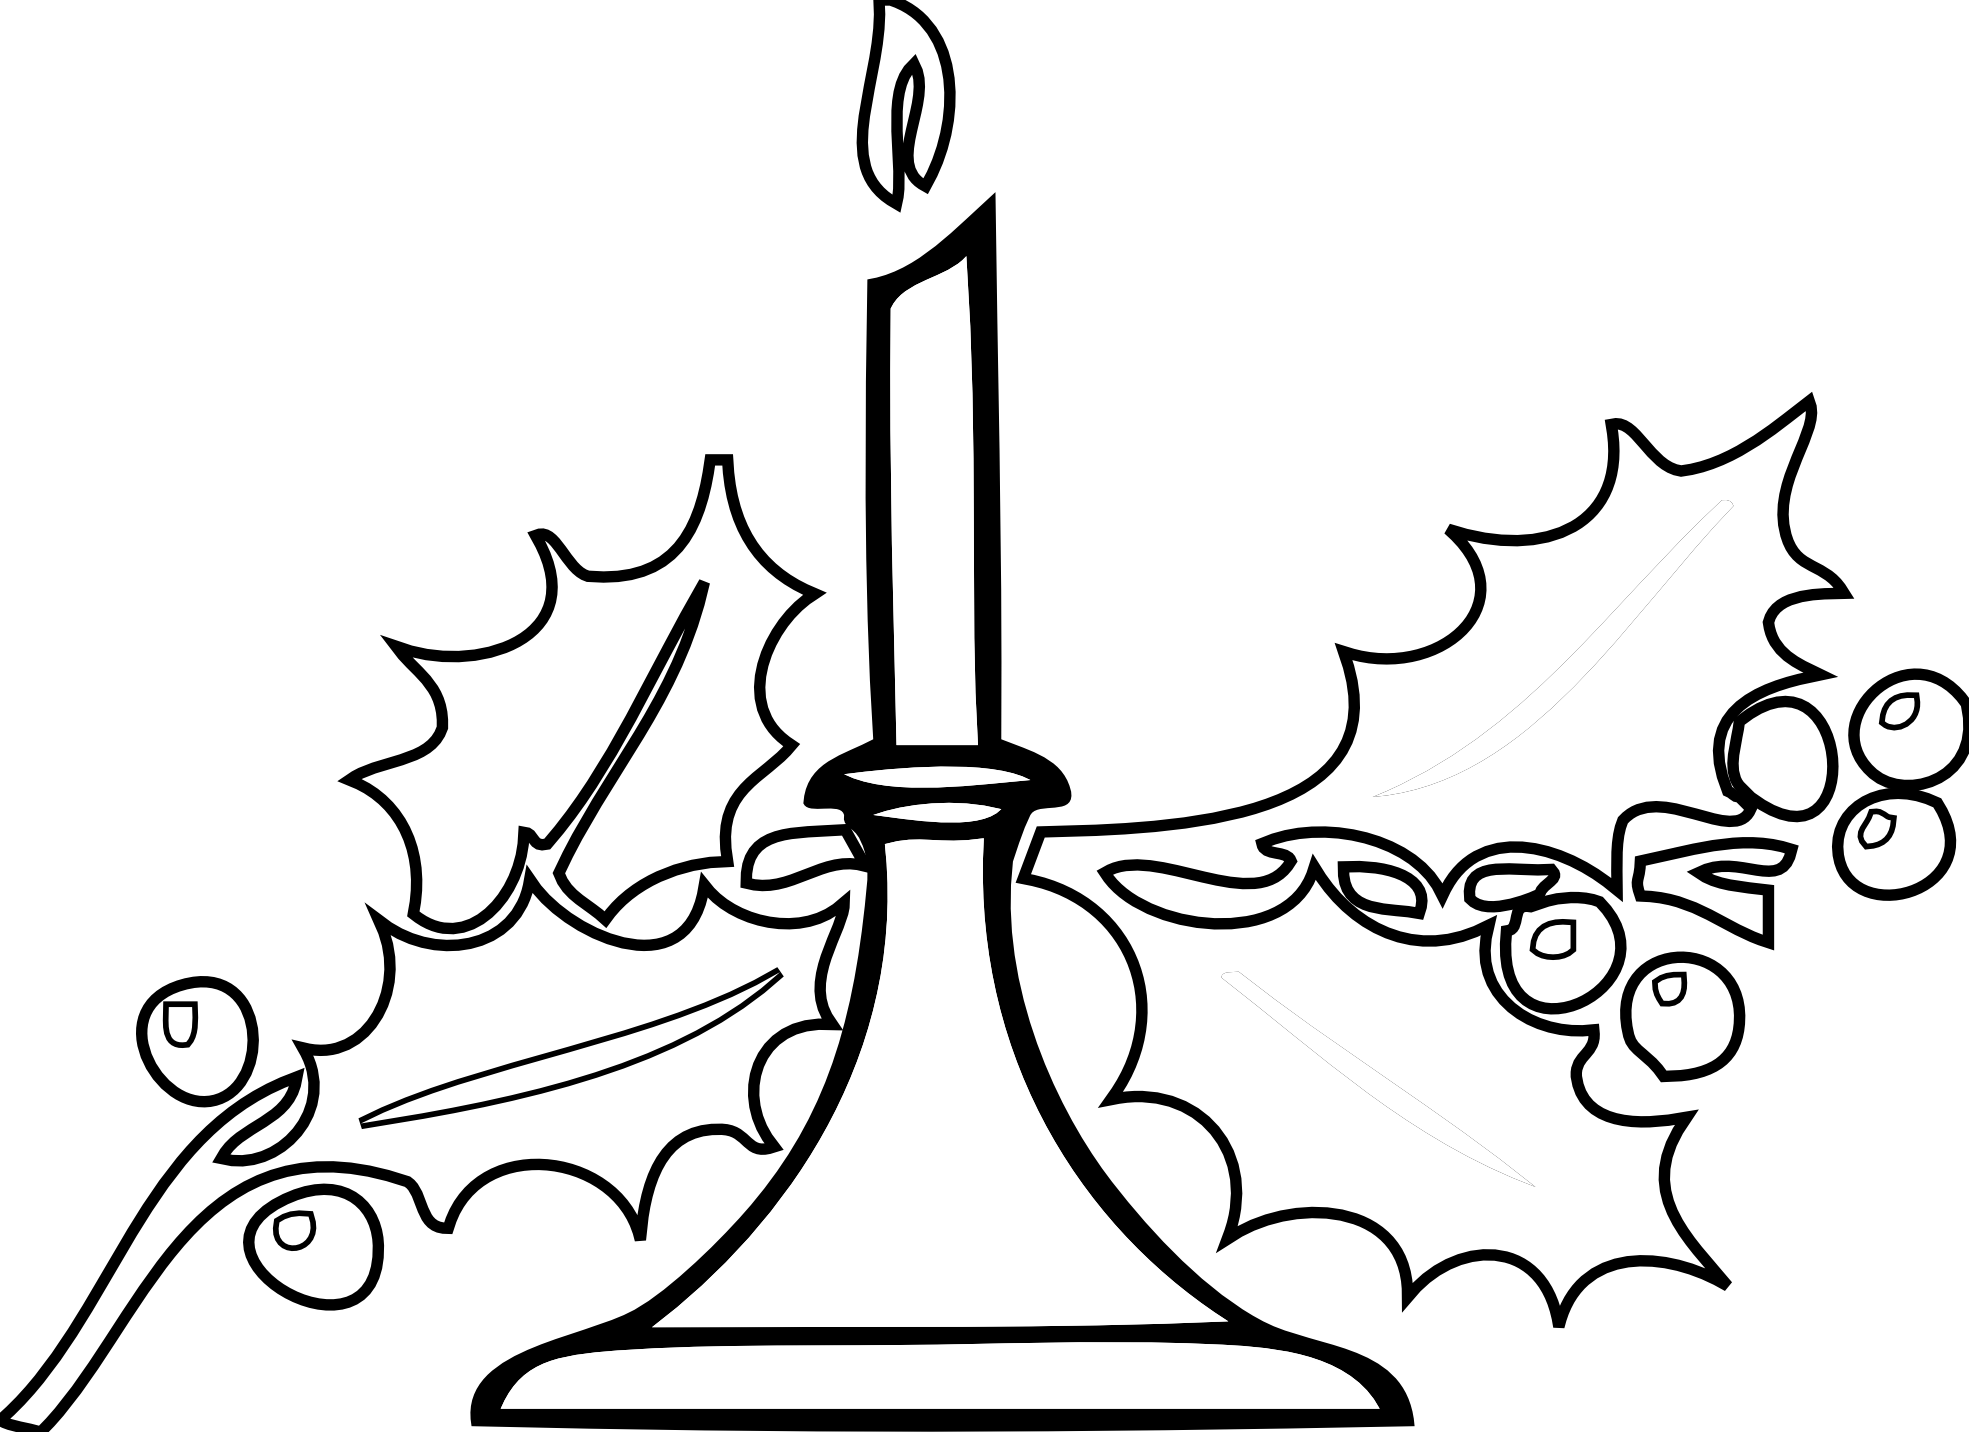 Black and white panda. Pentecost clipart candle flame